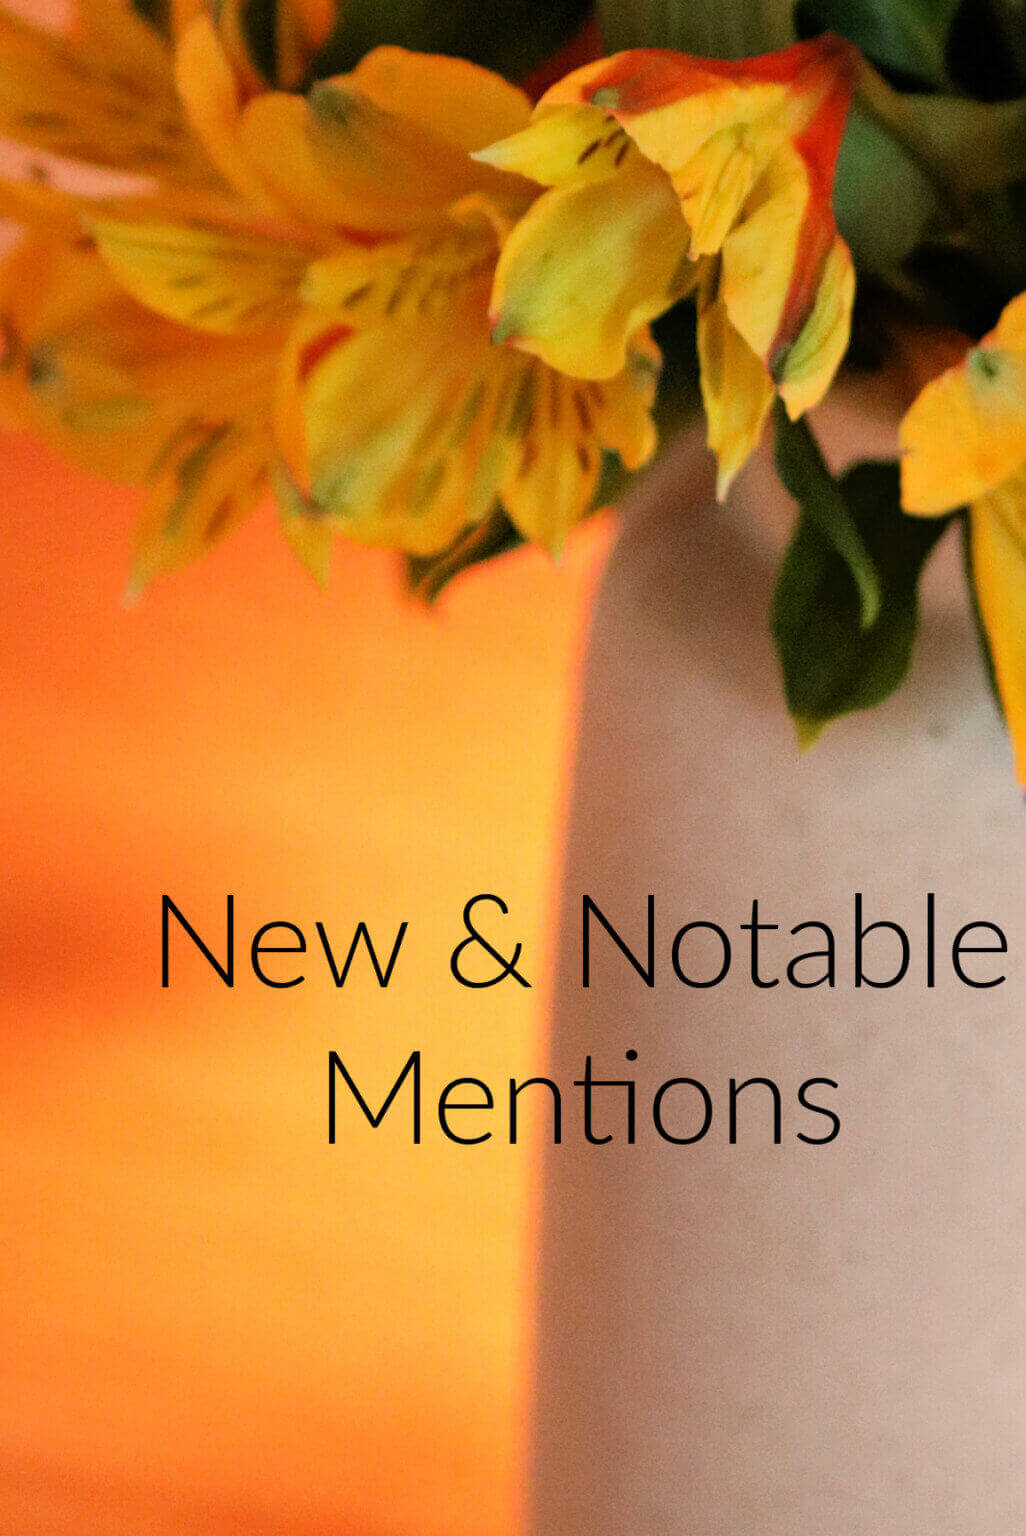 New & Notable Mentions #5